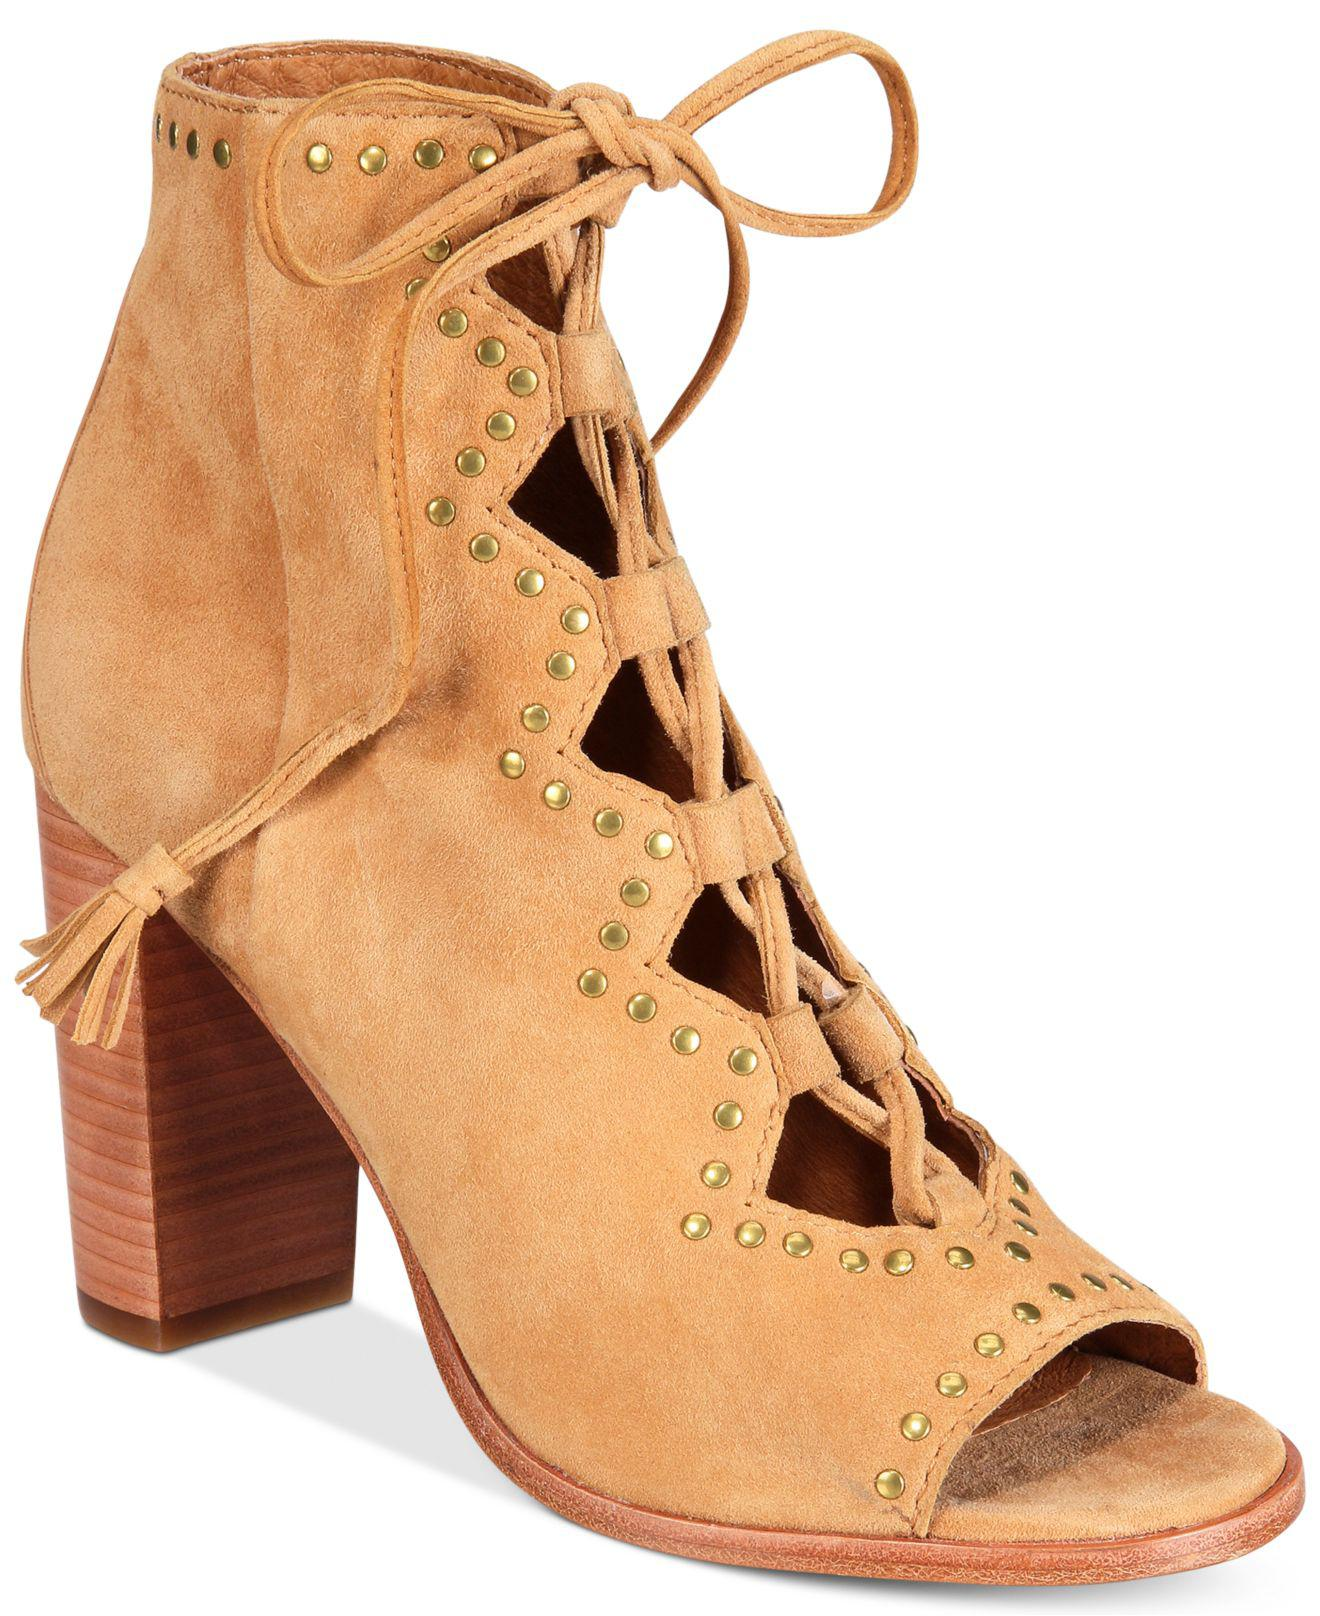 b1610ab512a Lyst - Frye Women s Gabby Ghillie Stud Booties in Natural